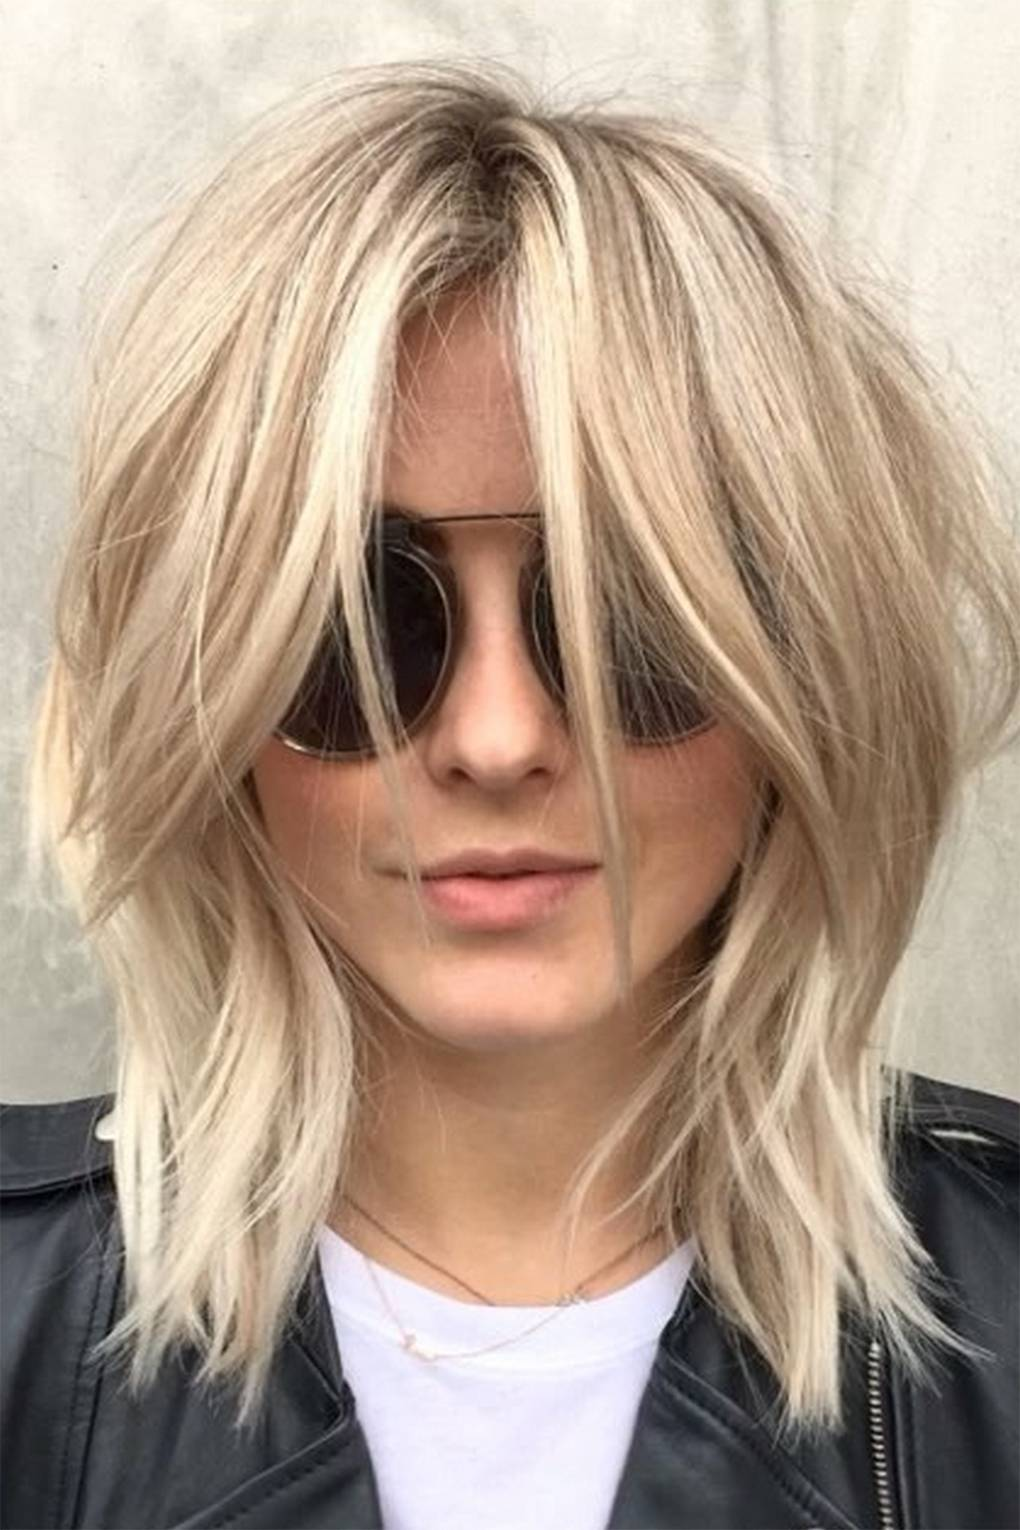 Julianne Hough Hair Shag Cut By Riawna Capri Glamour Uk